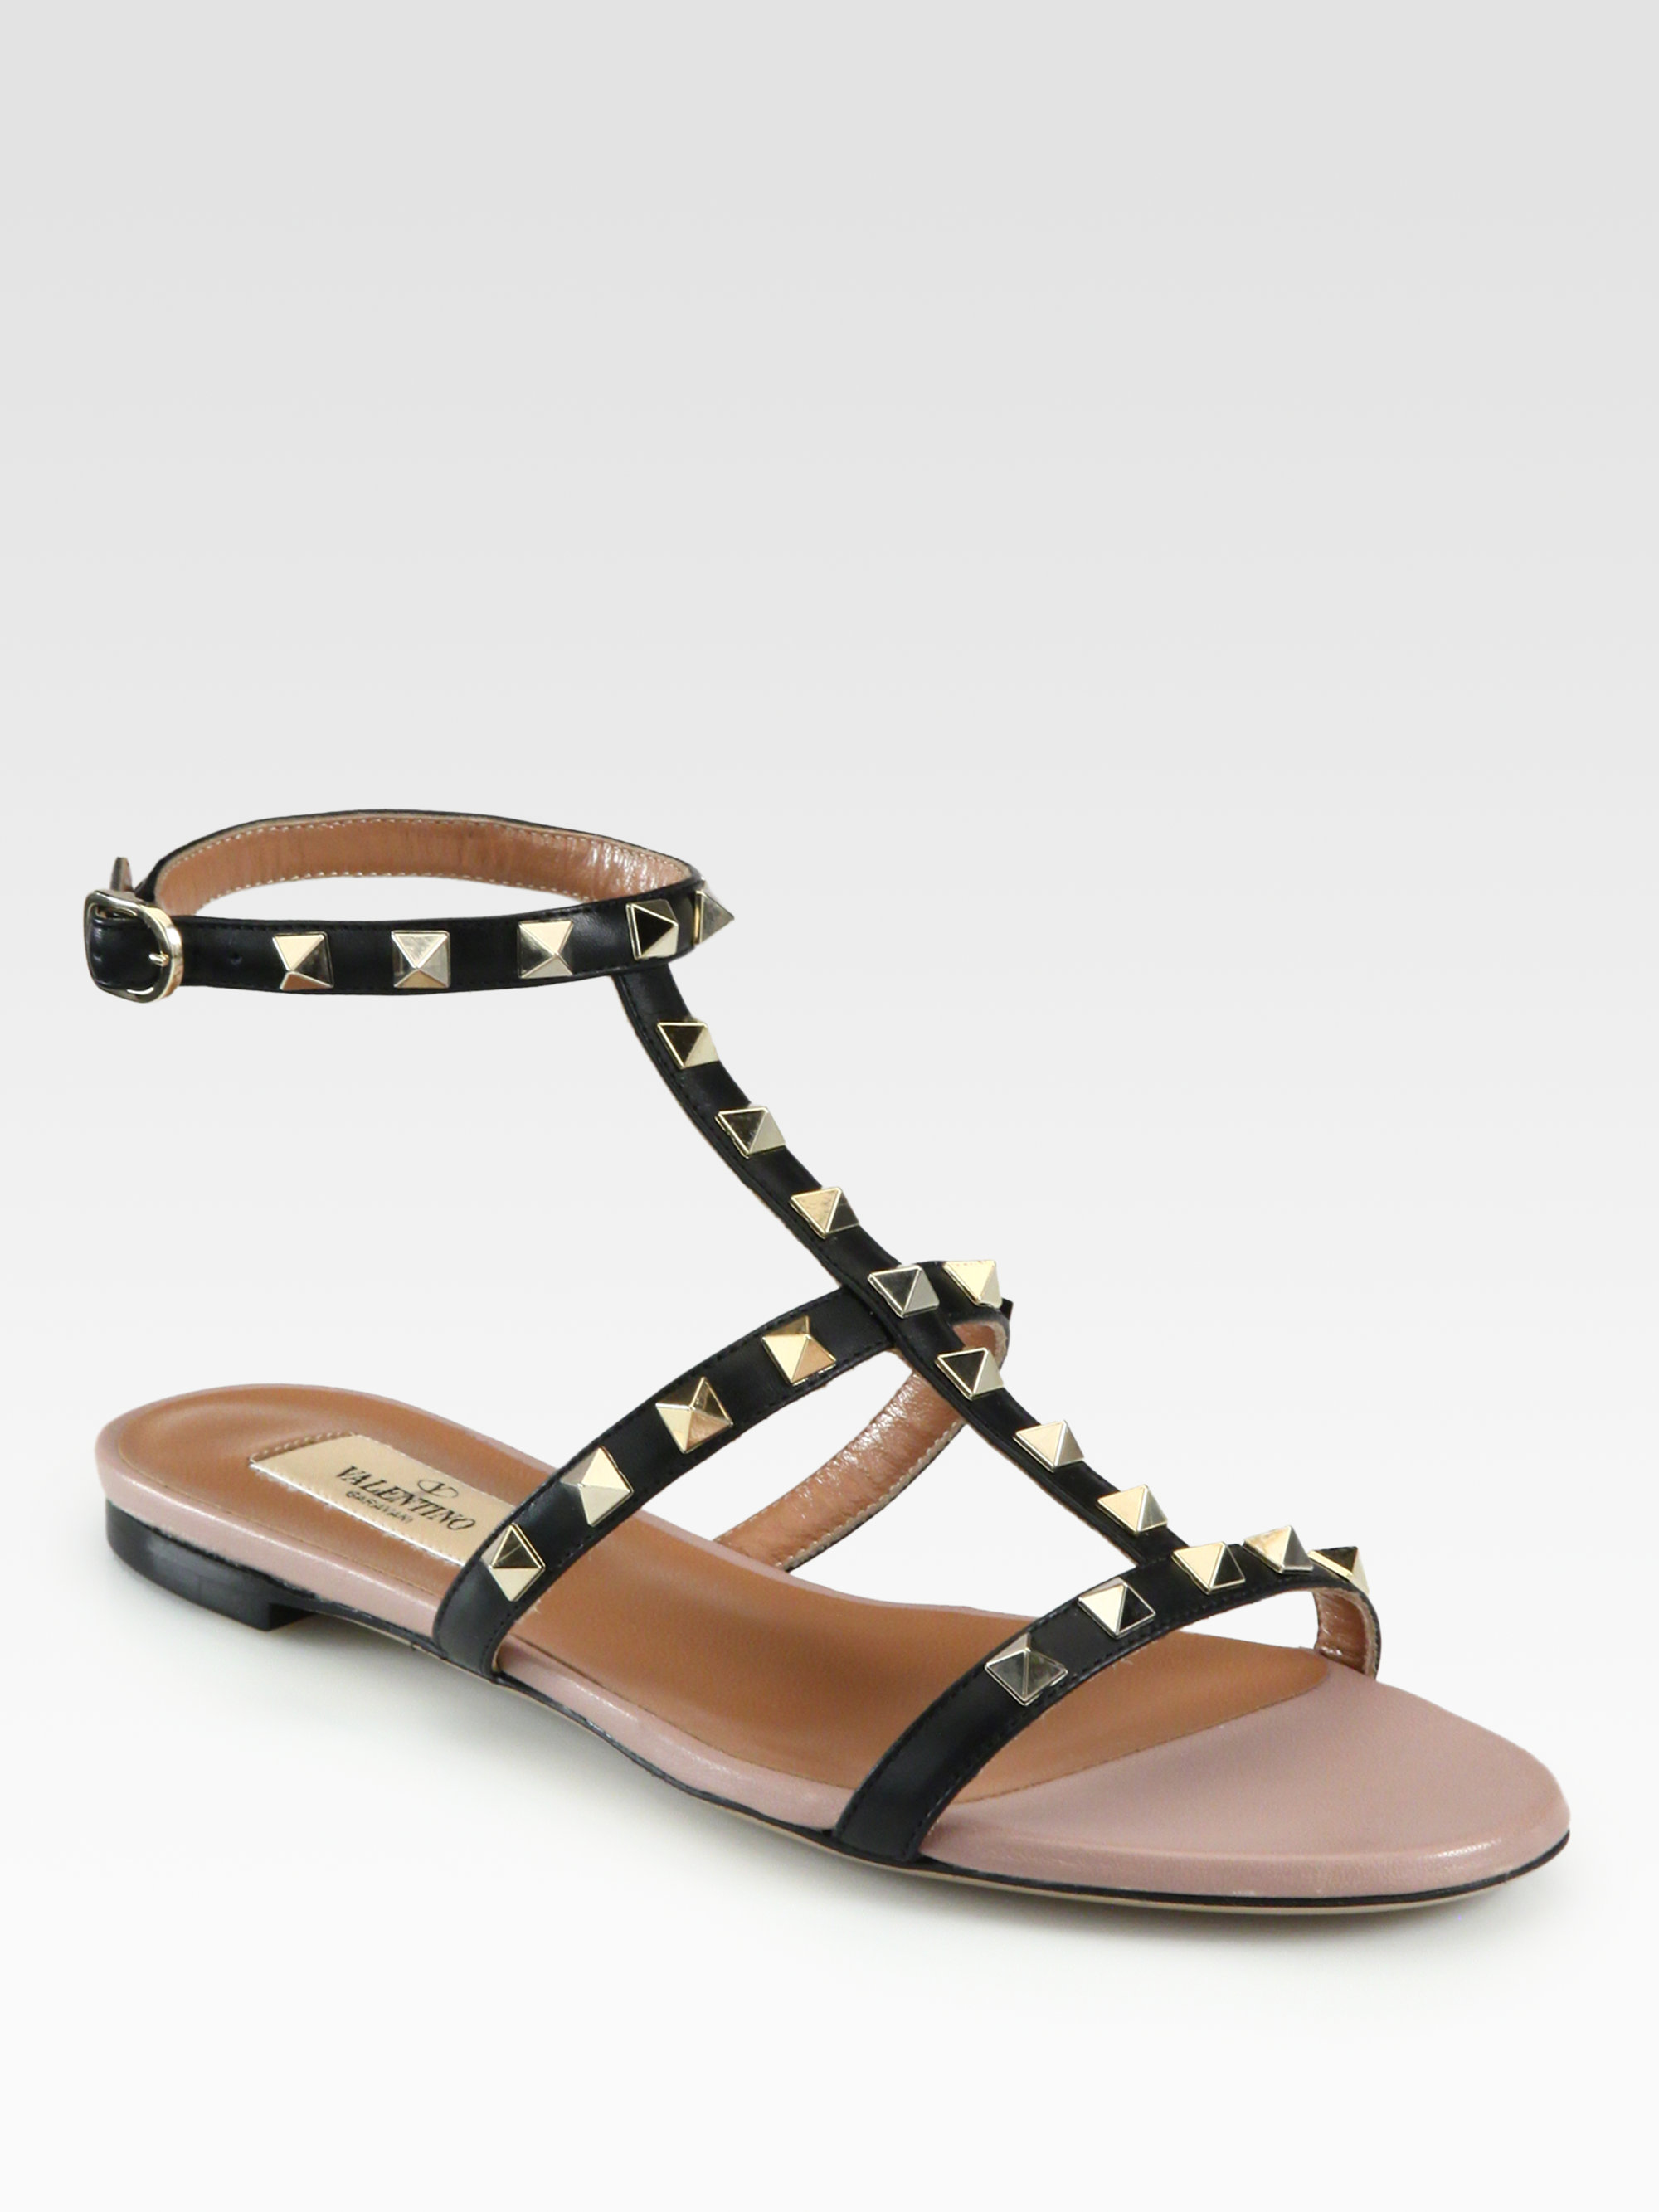 Lyst Valentino Rockstud Leather Gladiator Sandals In Black